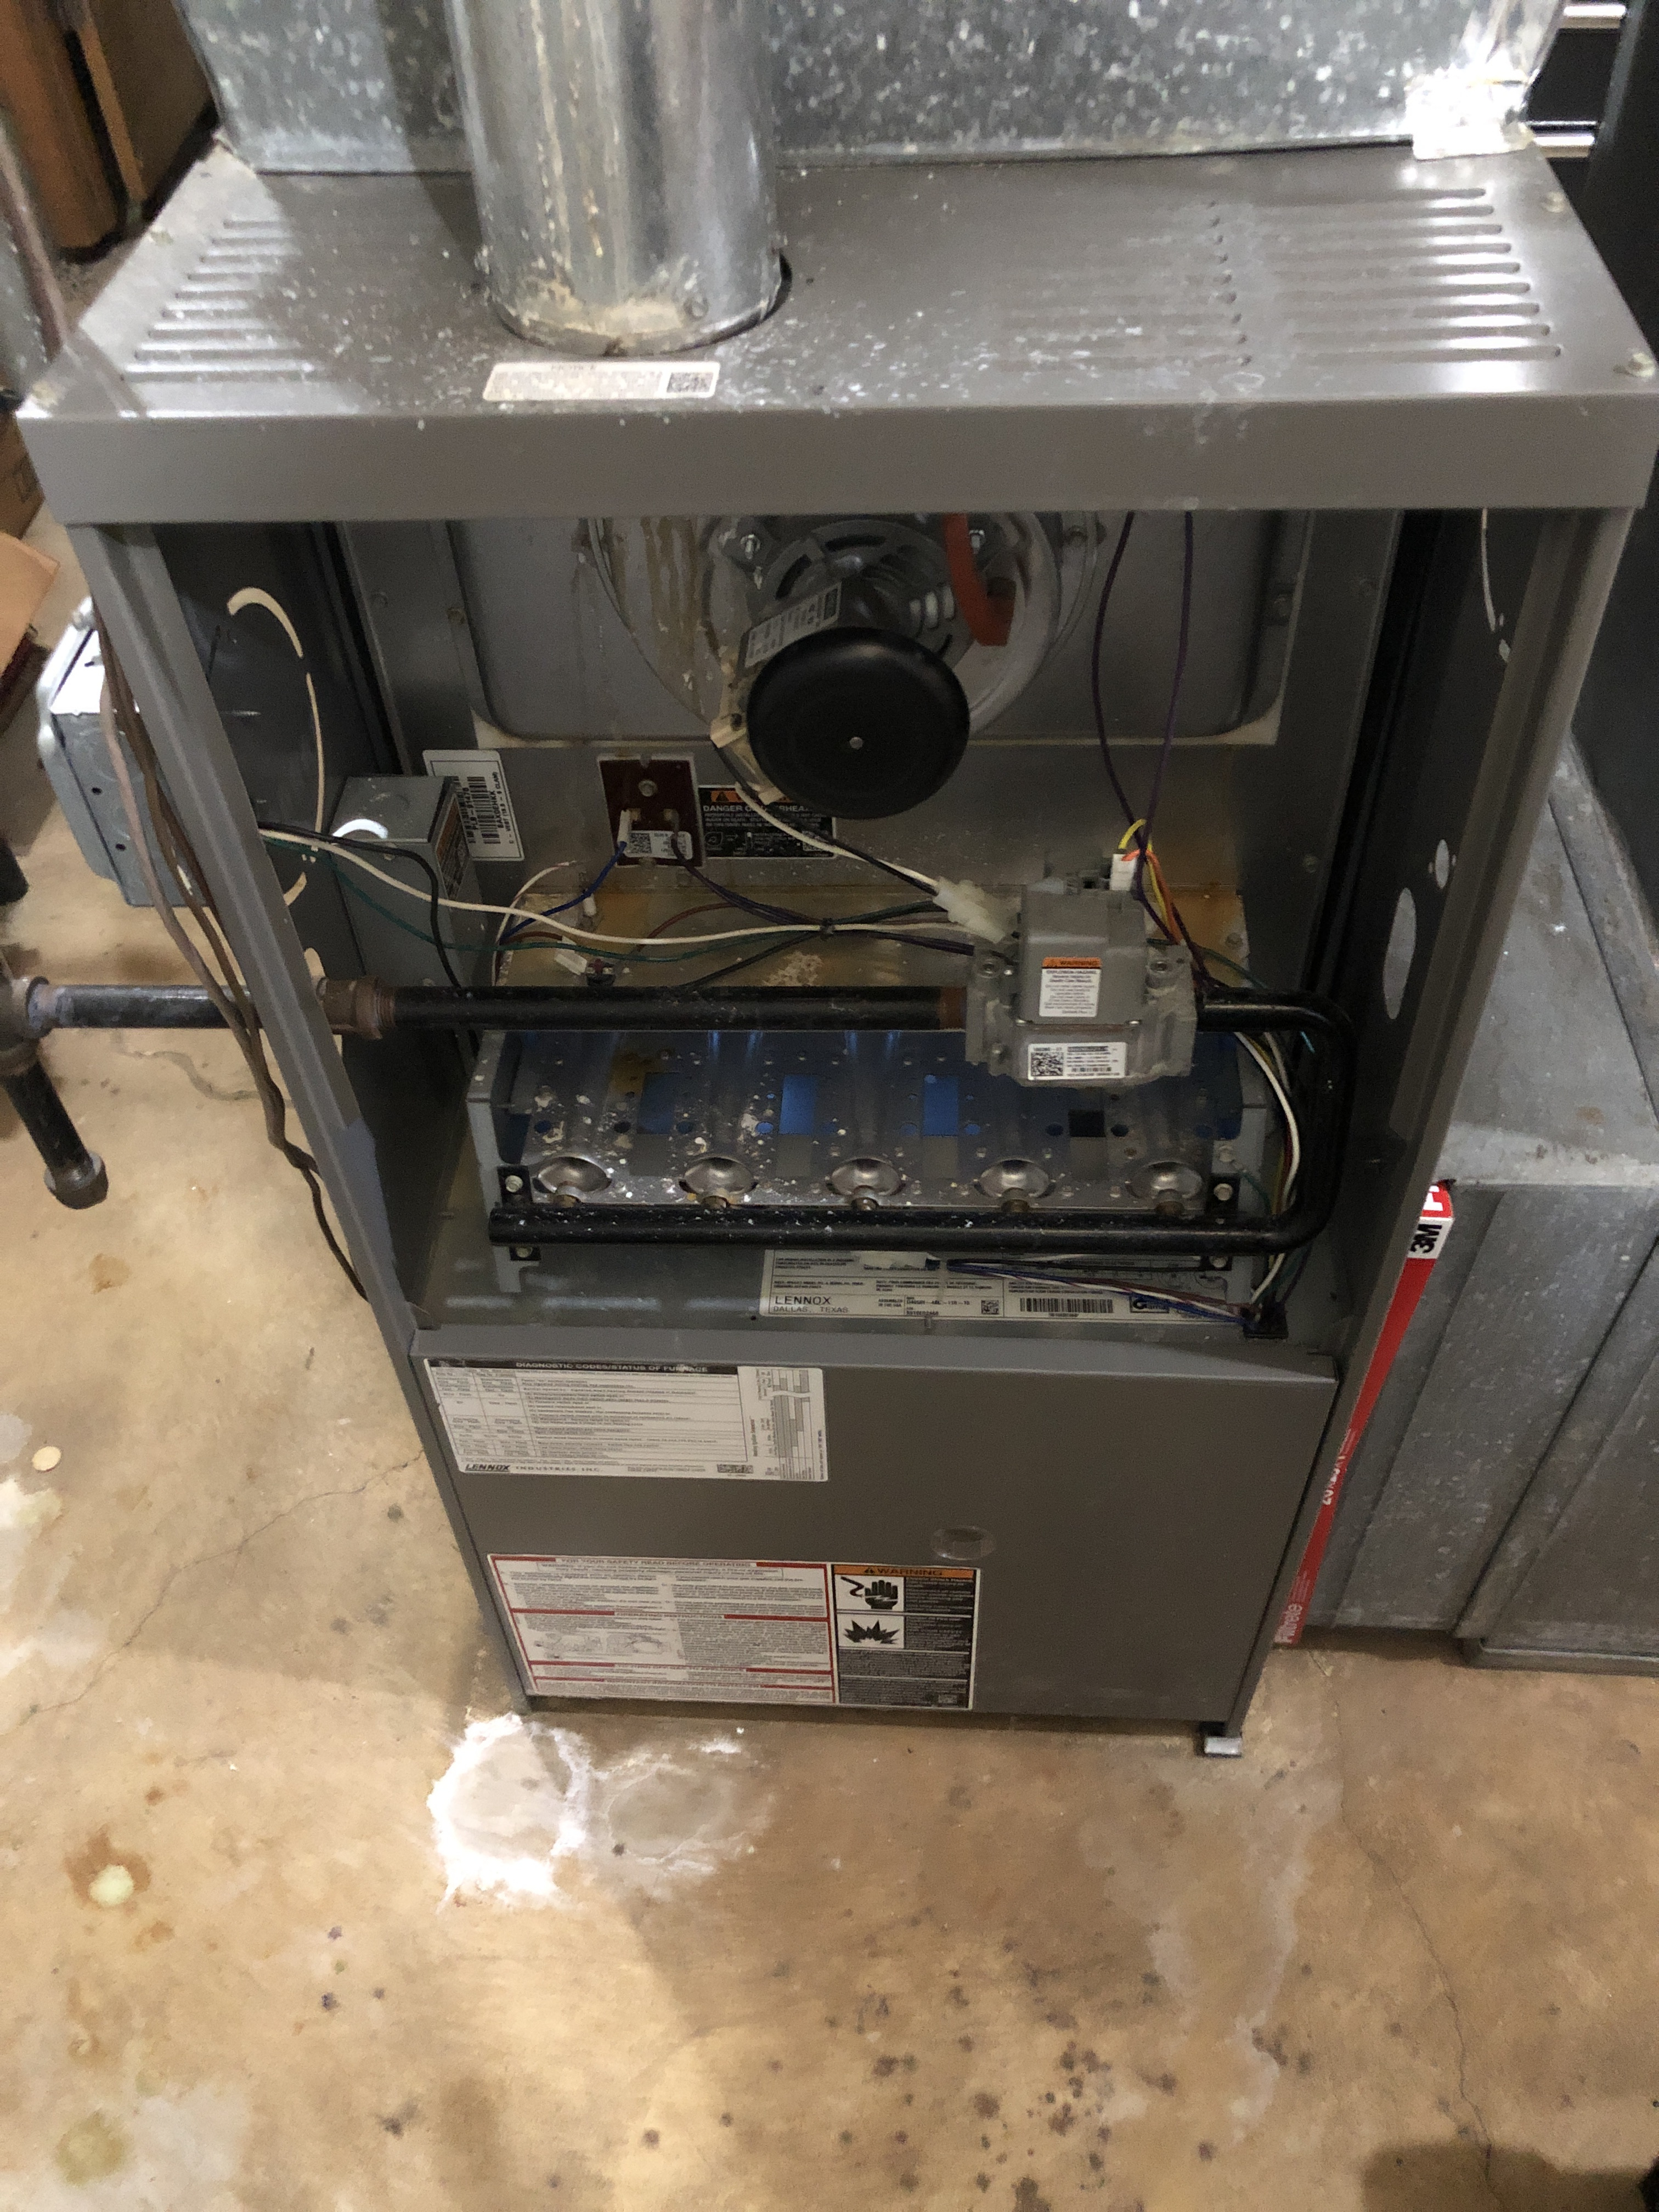 Furnace maintenance on a Lennox furnace.